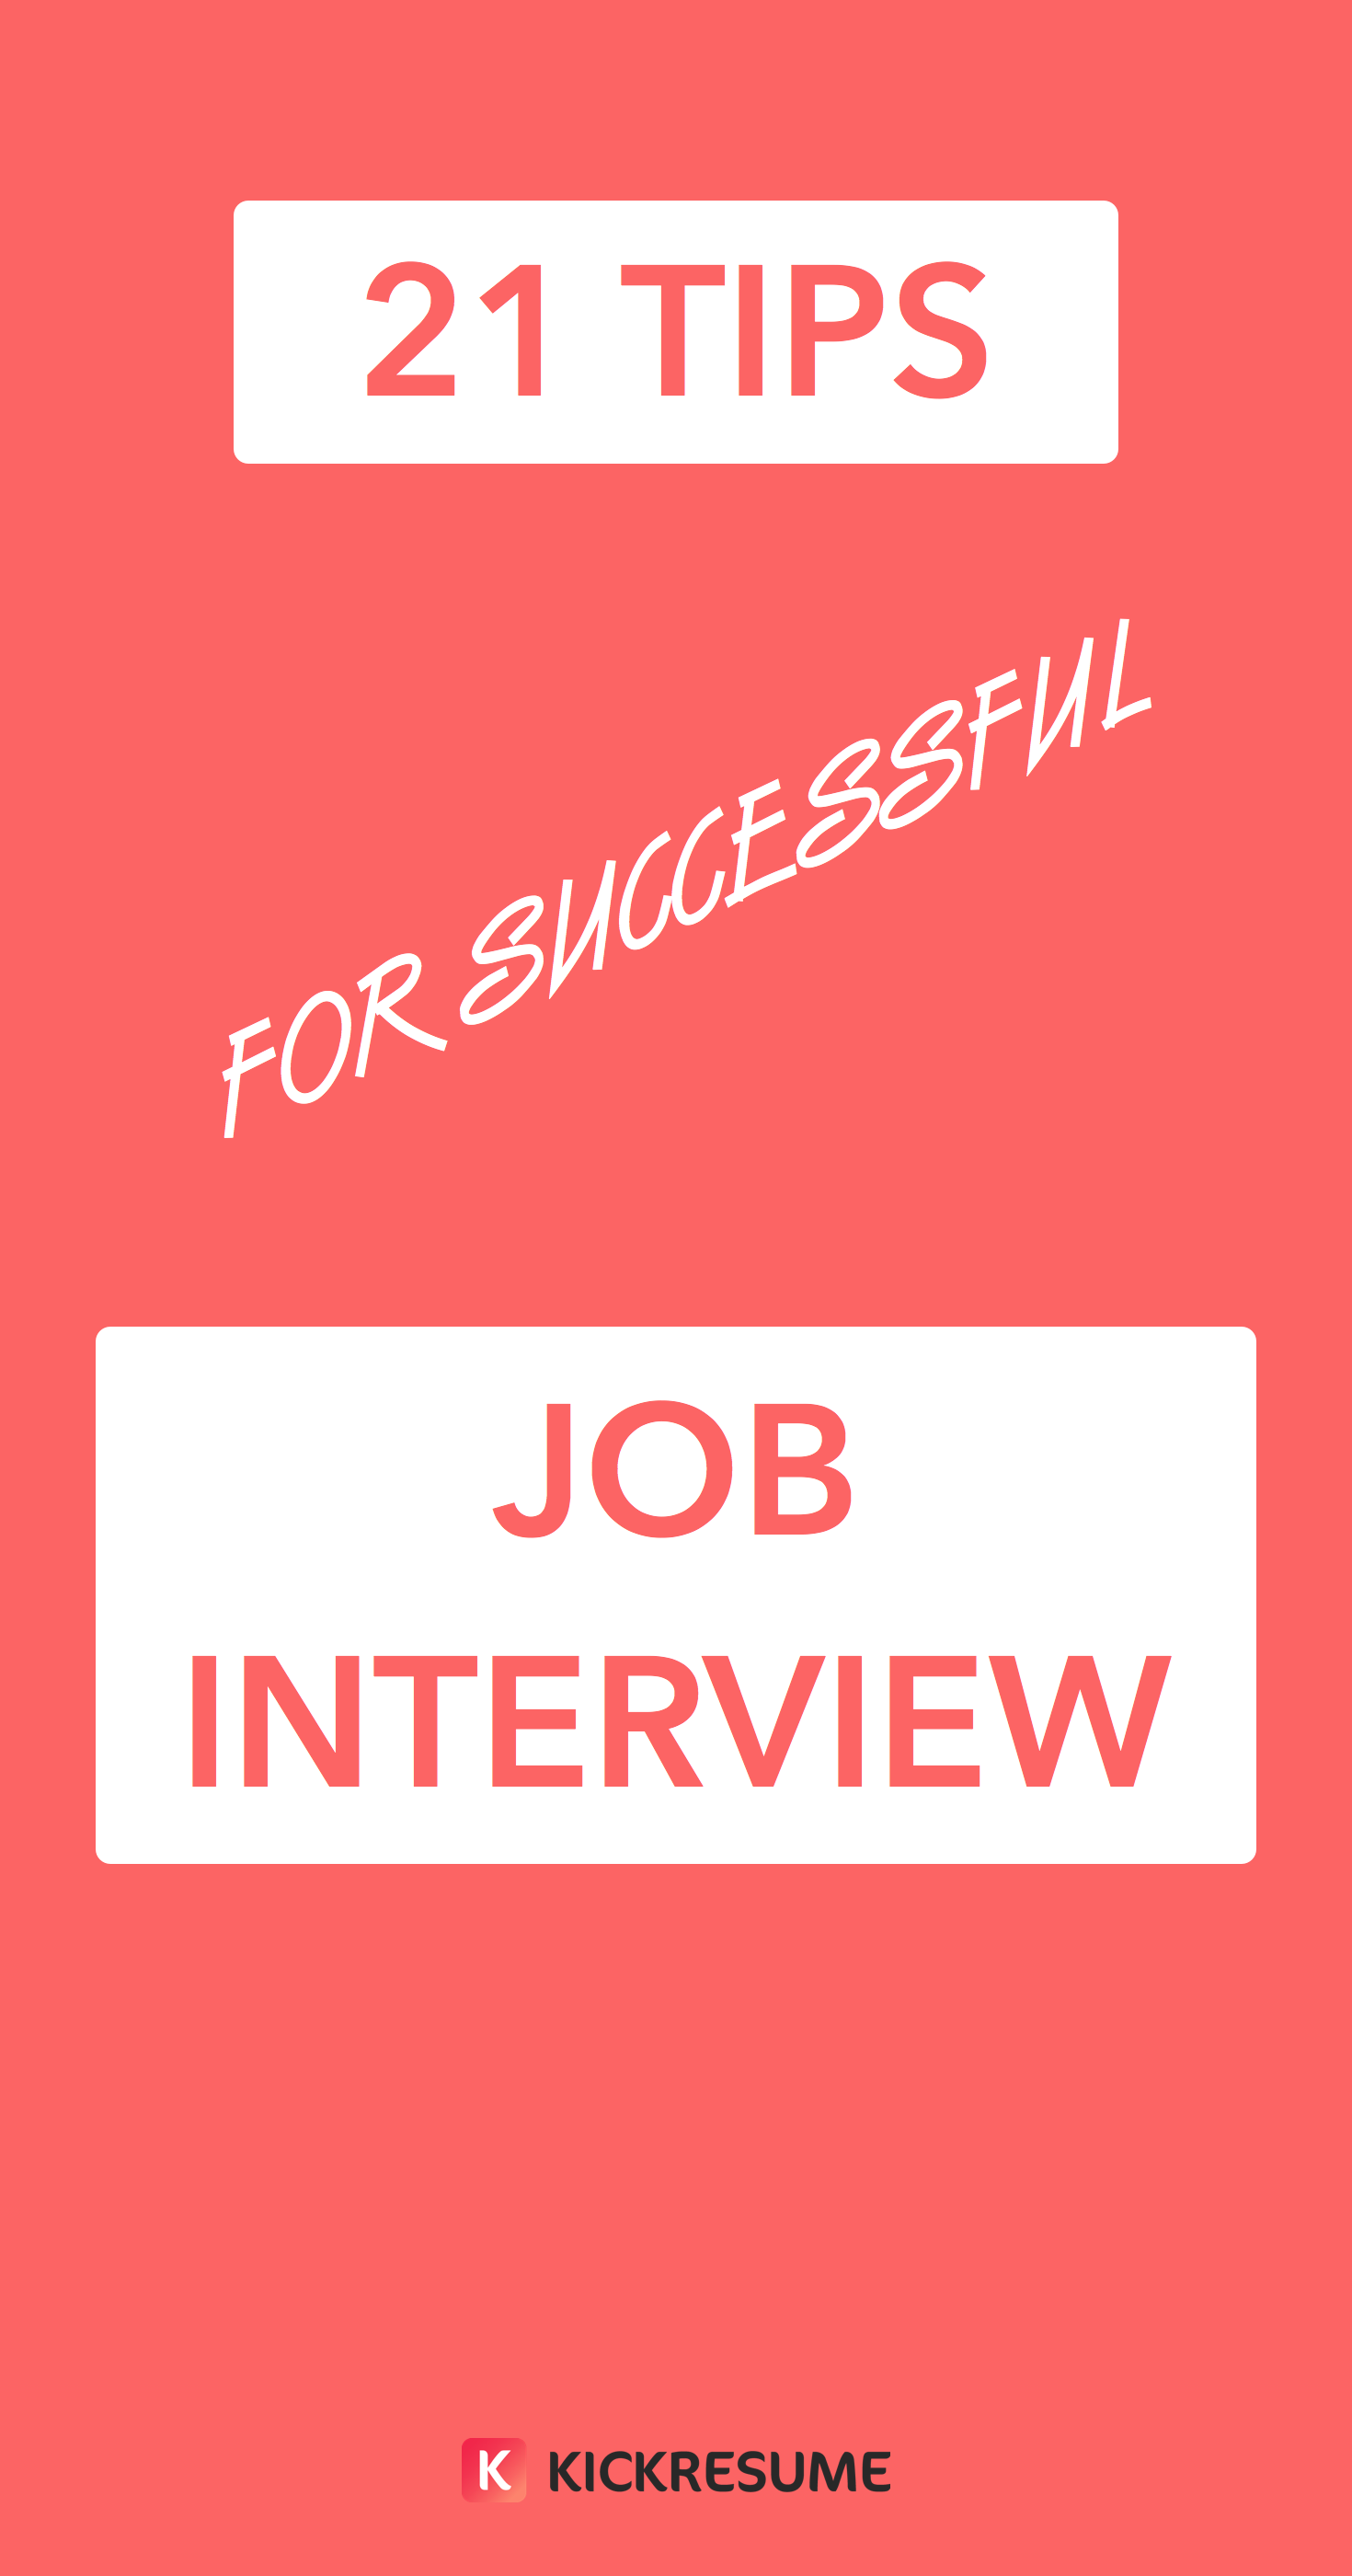 21 Tips for a Successful Job Interview [infographic] Job